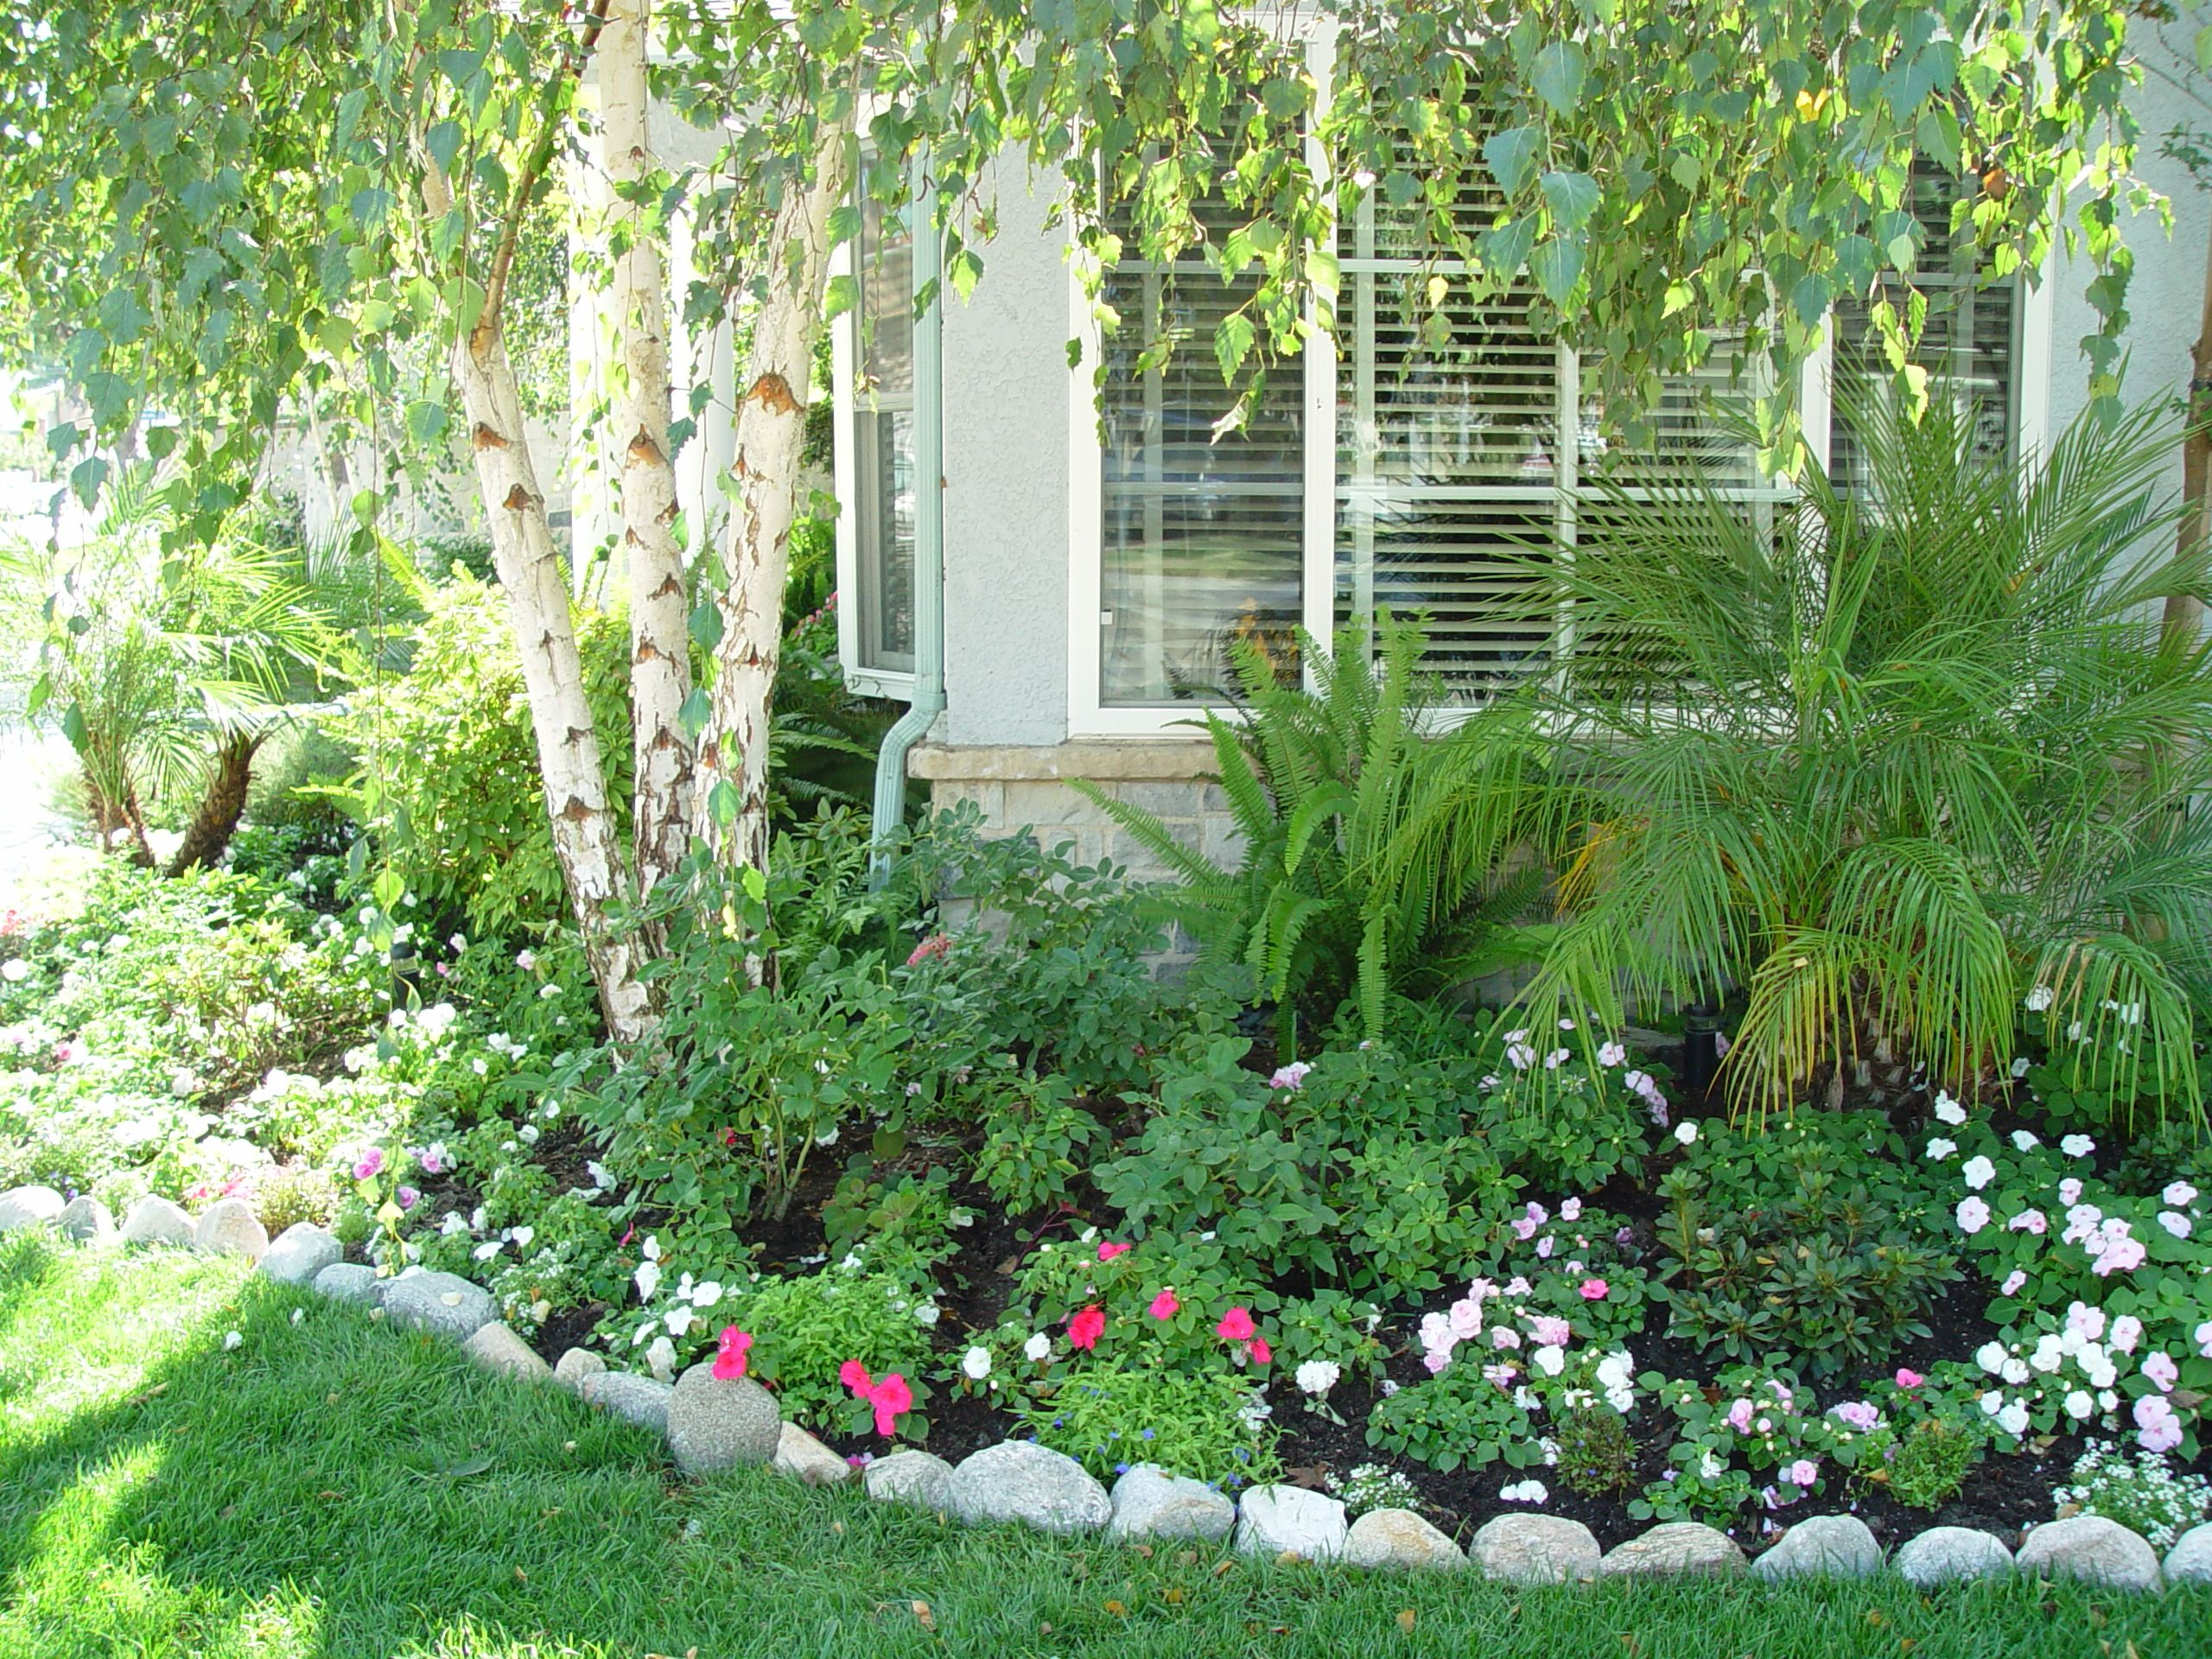 gardening small spaces along with white iceberg roses complement